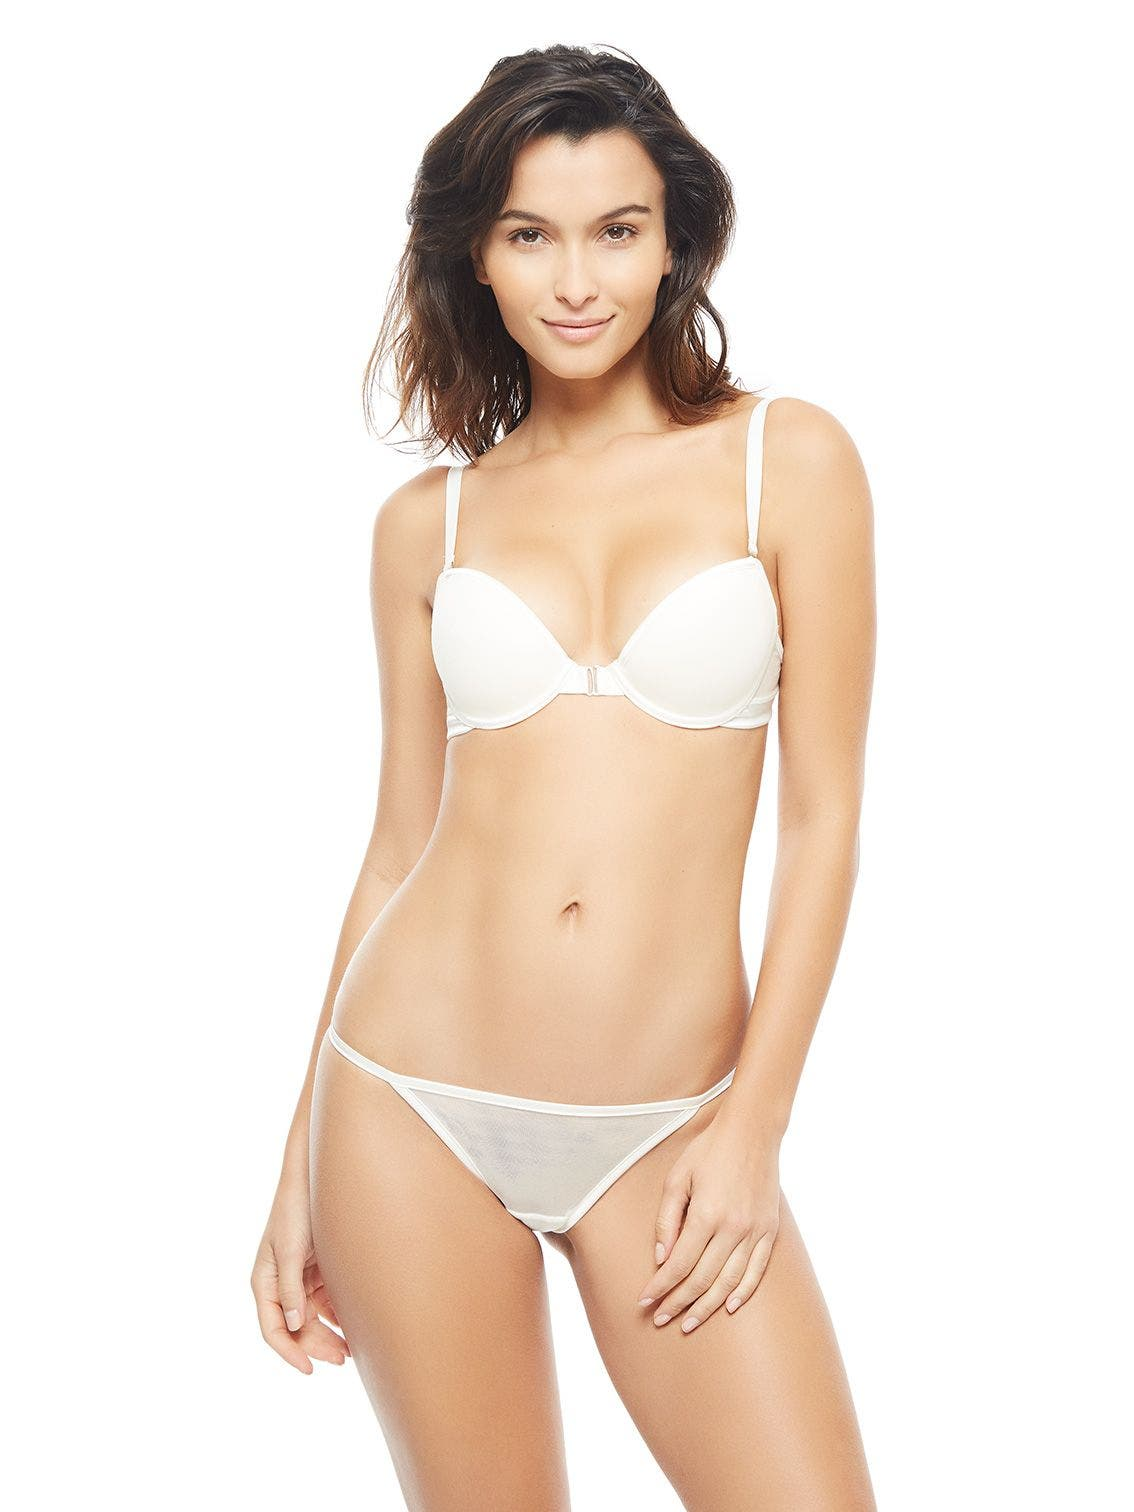 Soutien-gorge push-up moulé - Naturel